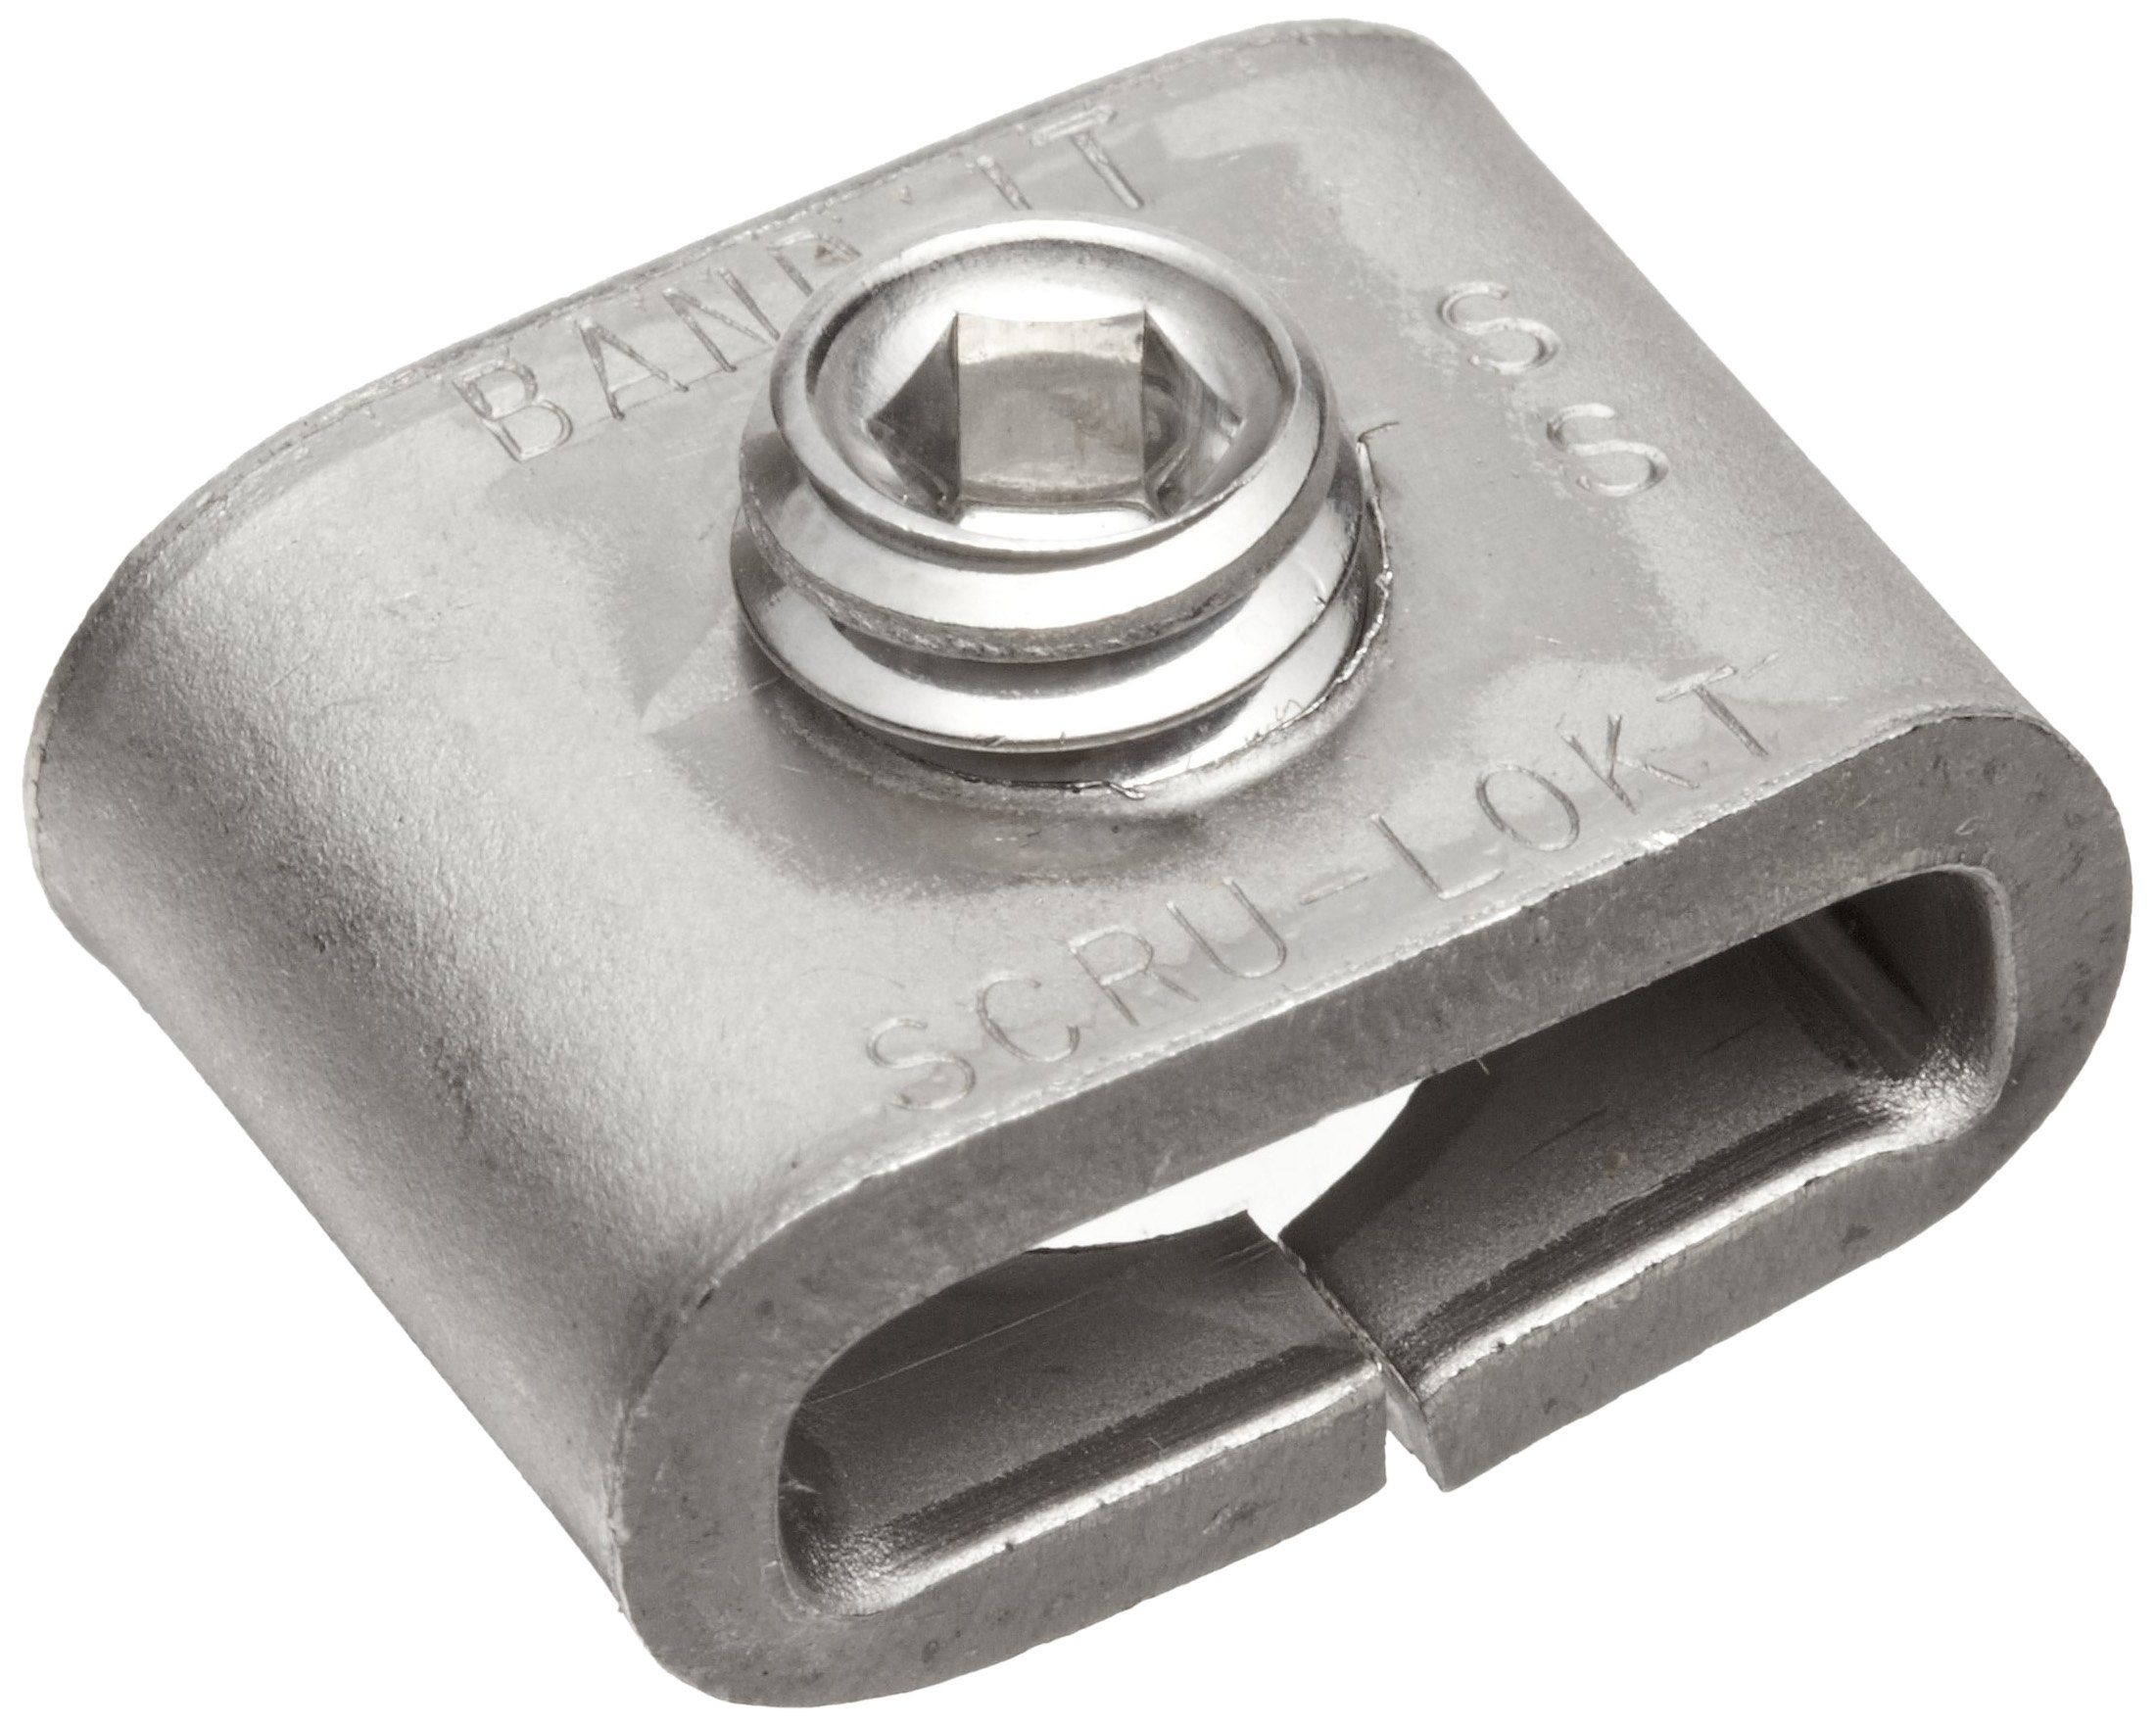 BAND-IT C72499 301 Stainless Steel 1/4 Hard Steel Scru-Lokt Buckle, 1/2'' Width, 25 per Box